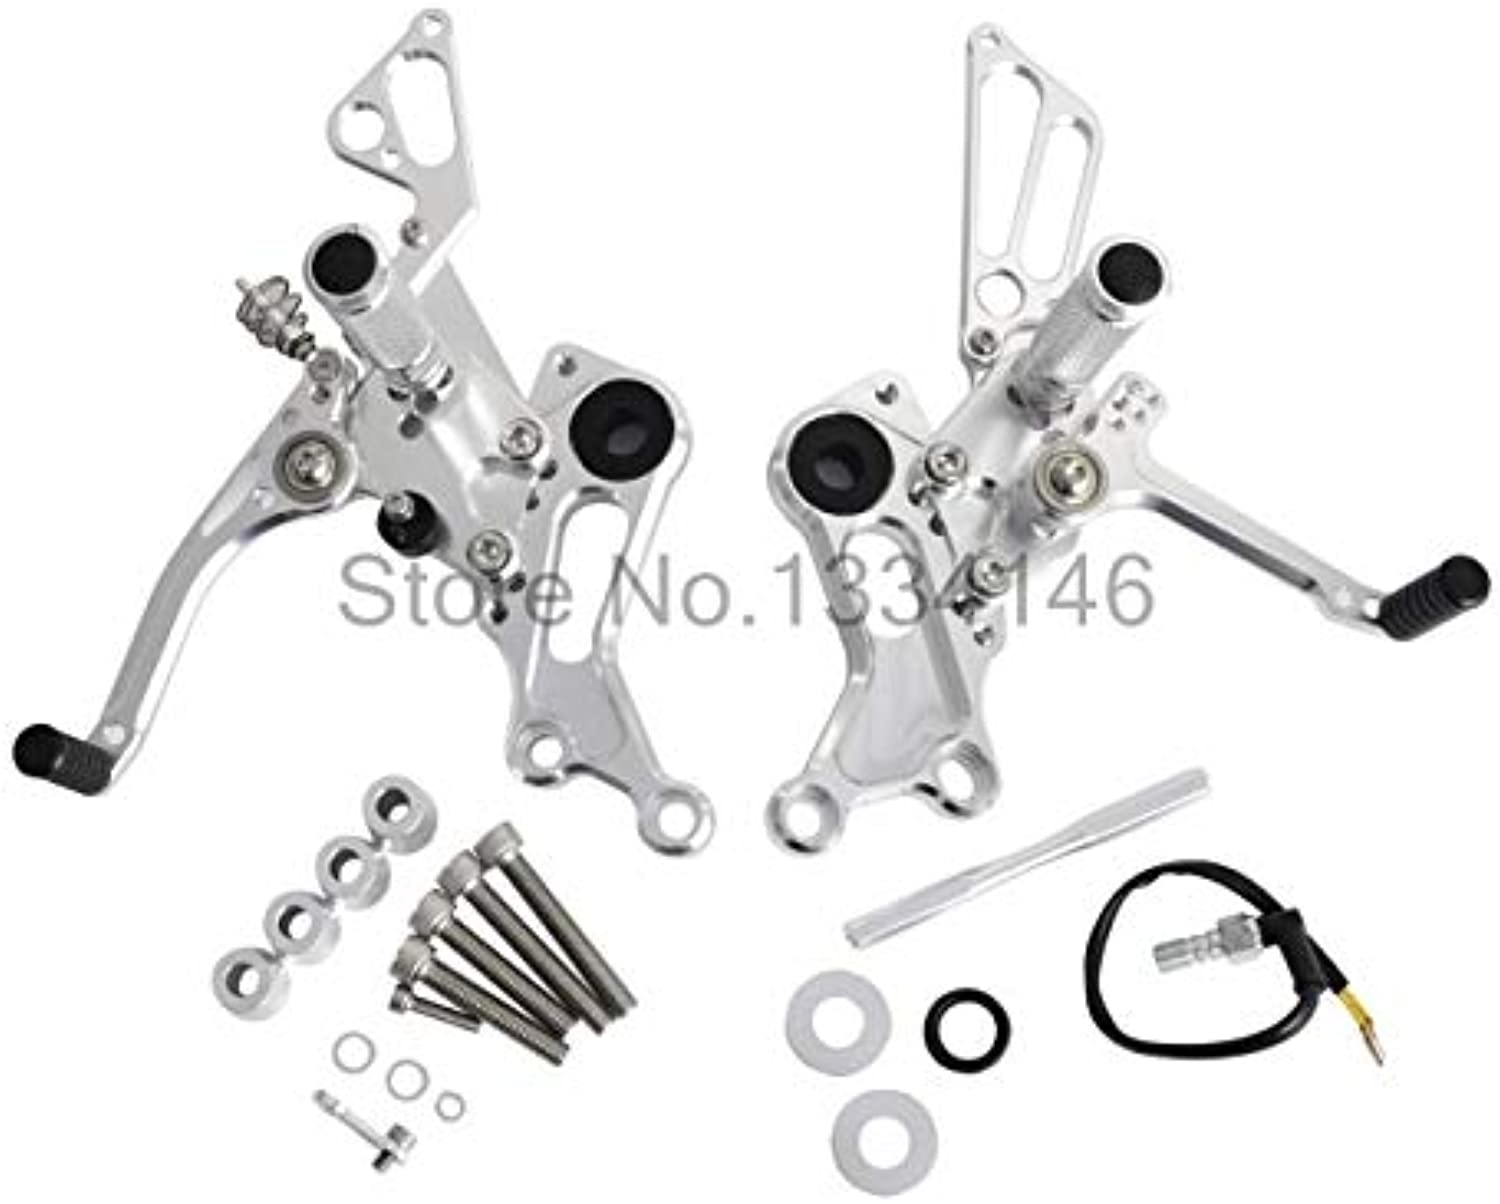 Frames & Fittings CNC Adjustable Foot Pegs Rearset Footrests Rear Sets for Ducati Monster 696 20082013 796 20102013 1100 S Evo